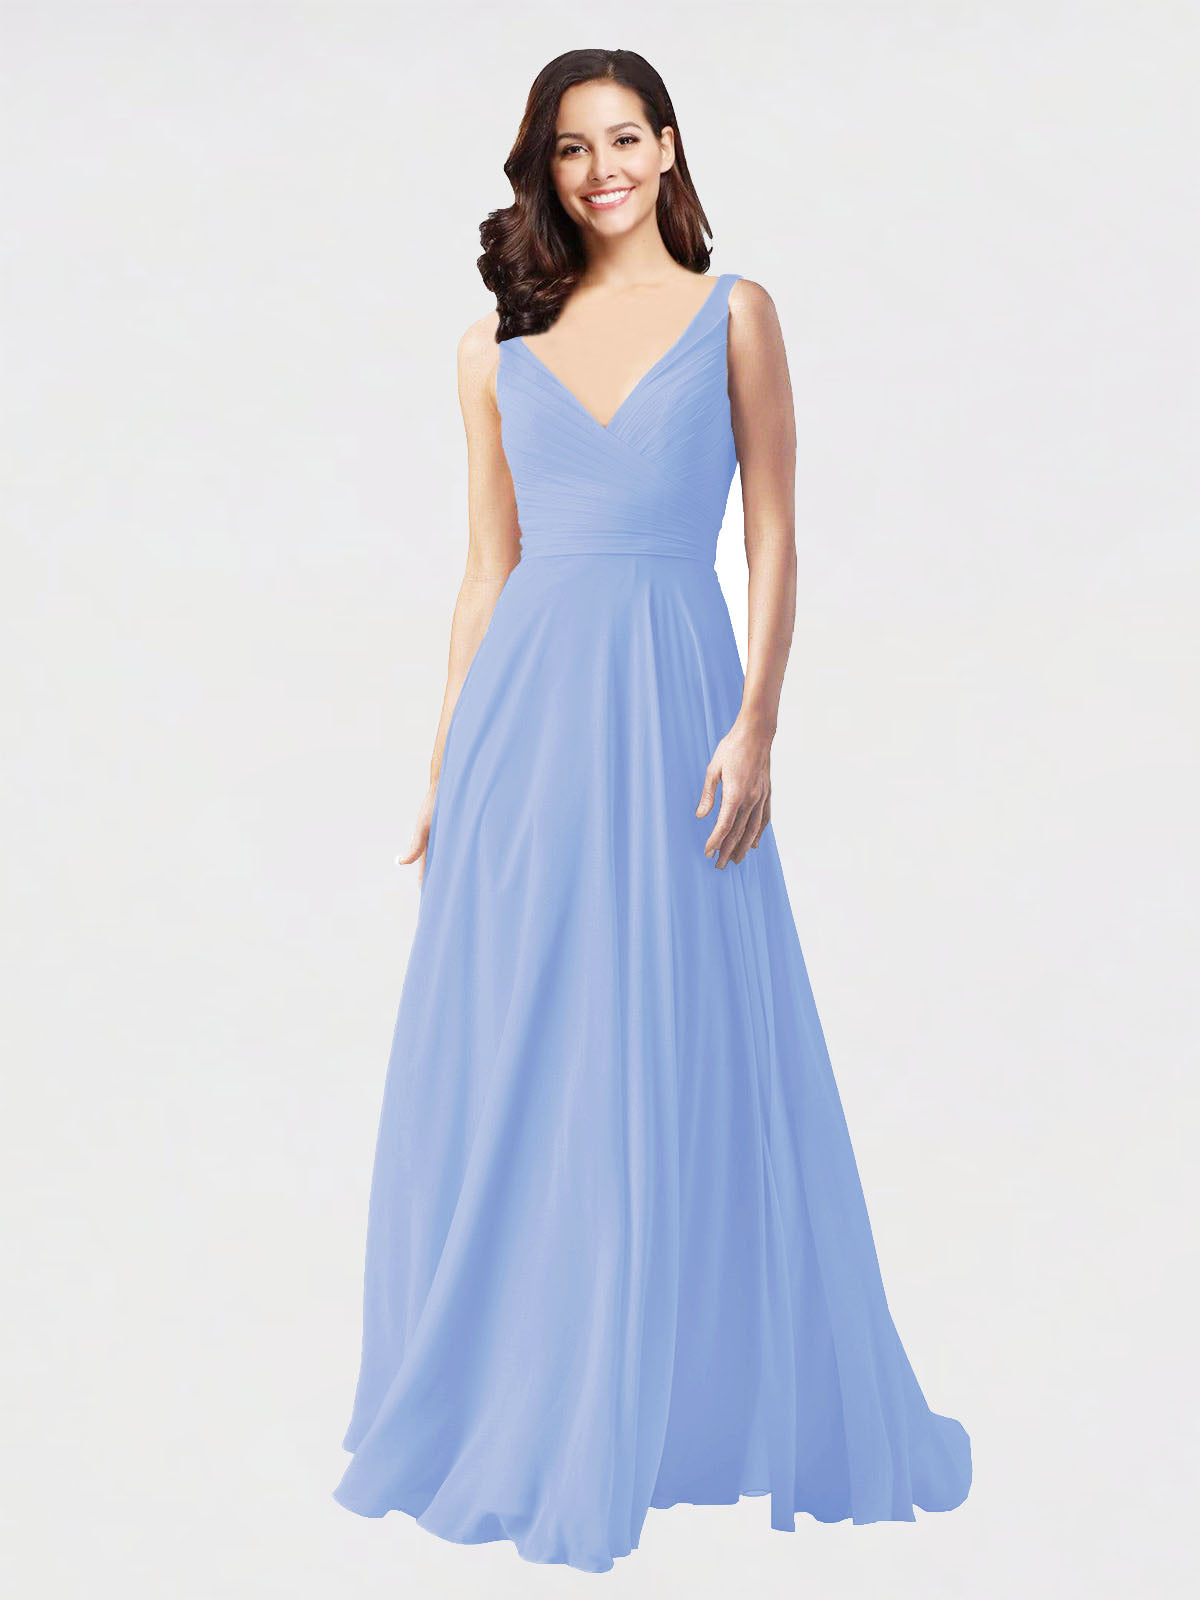 Long A-Line V-Neck Sleeveless Lavender Chiffon Bridesmaid Dress Bernice